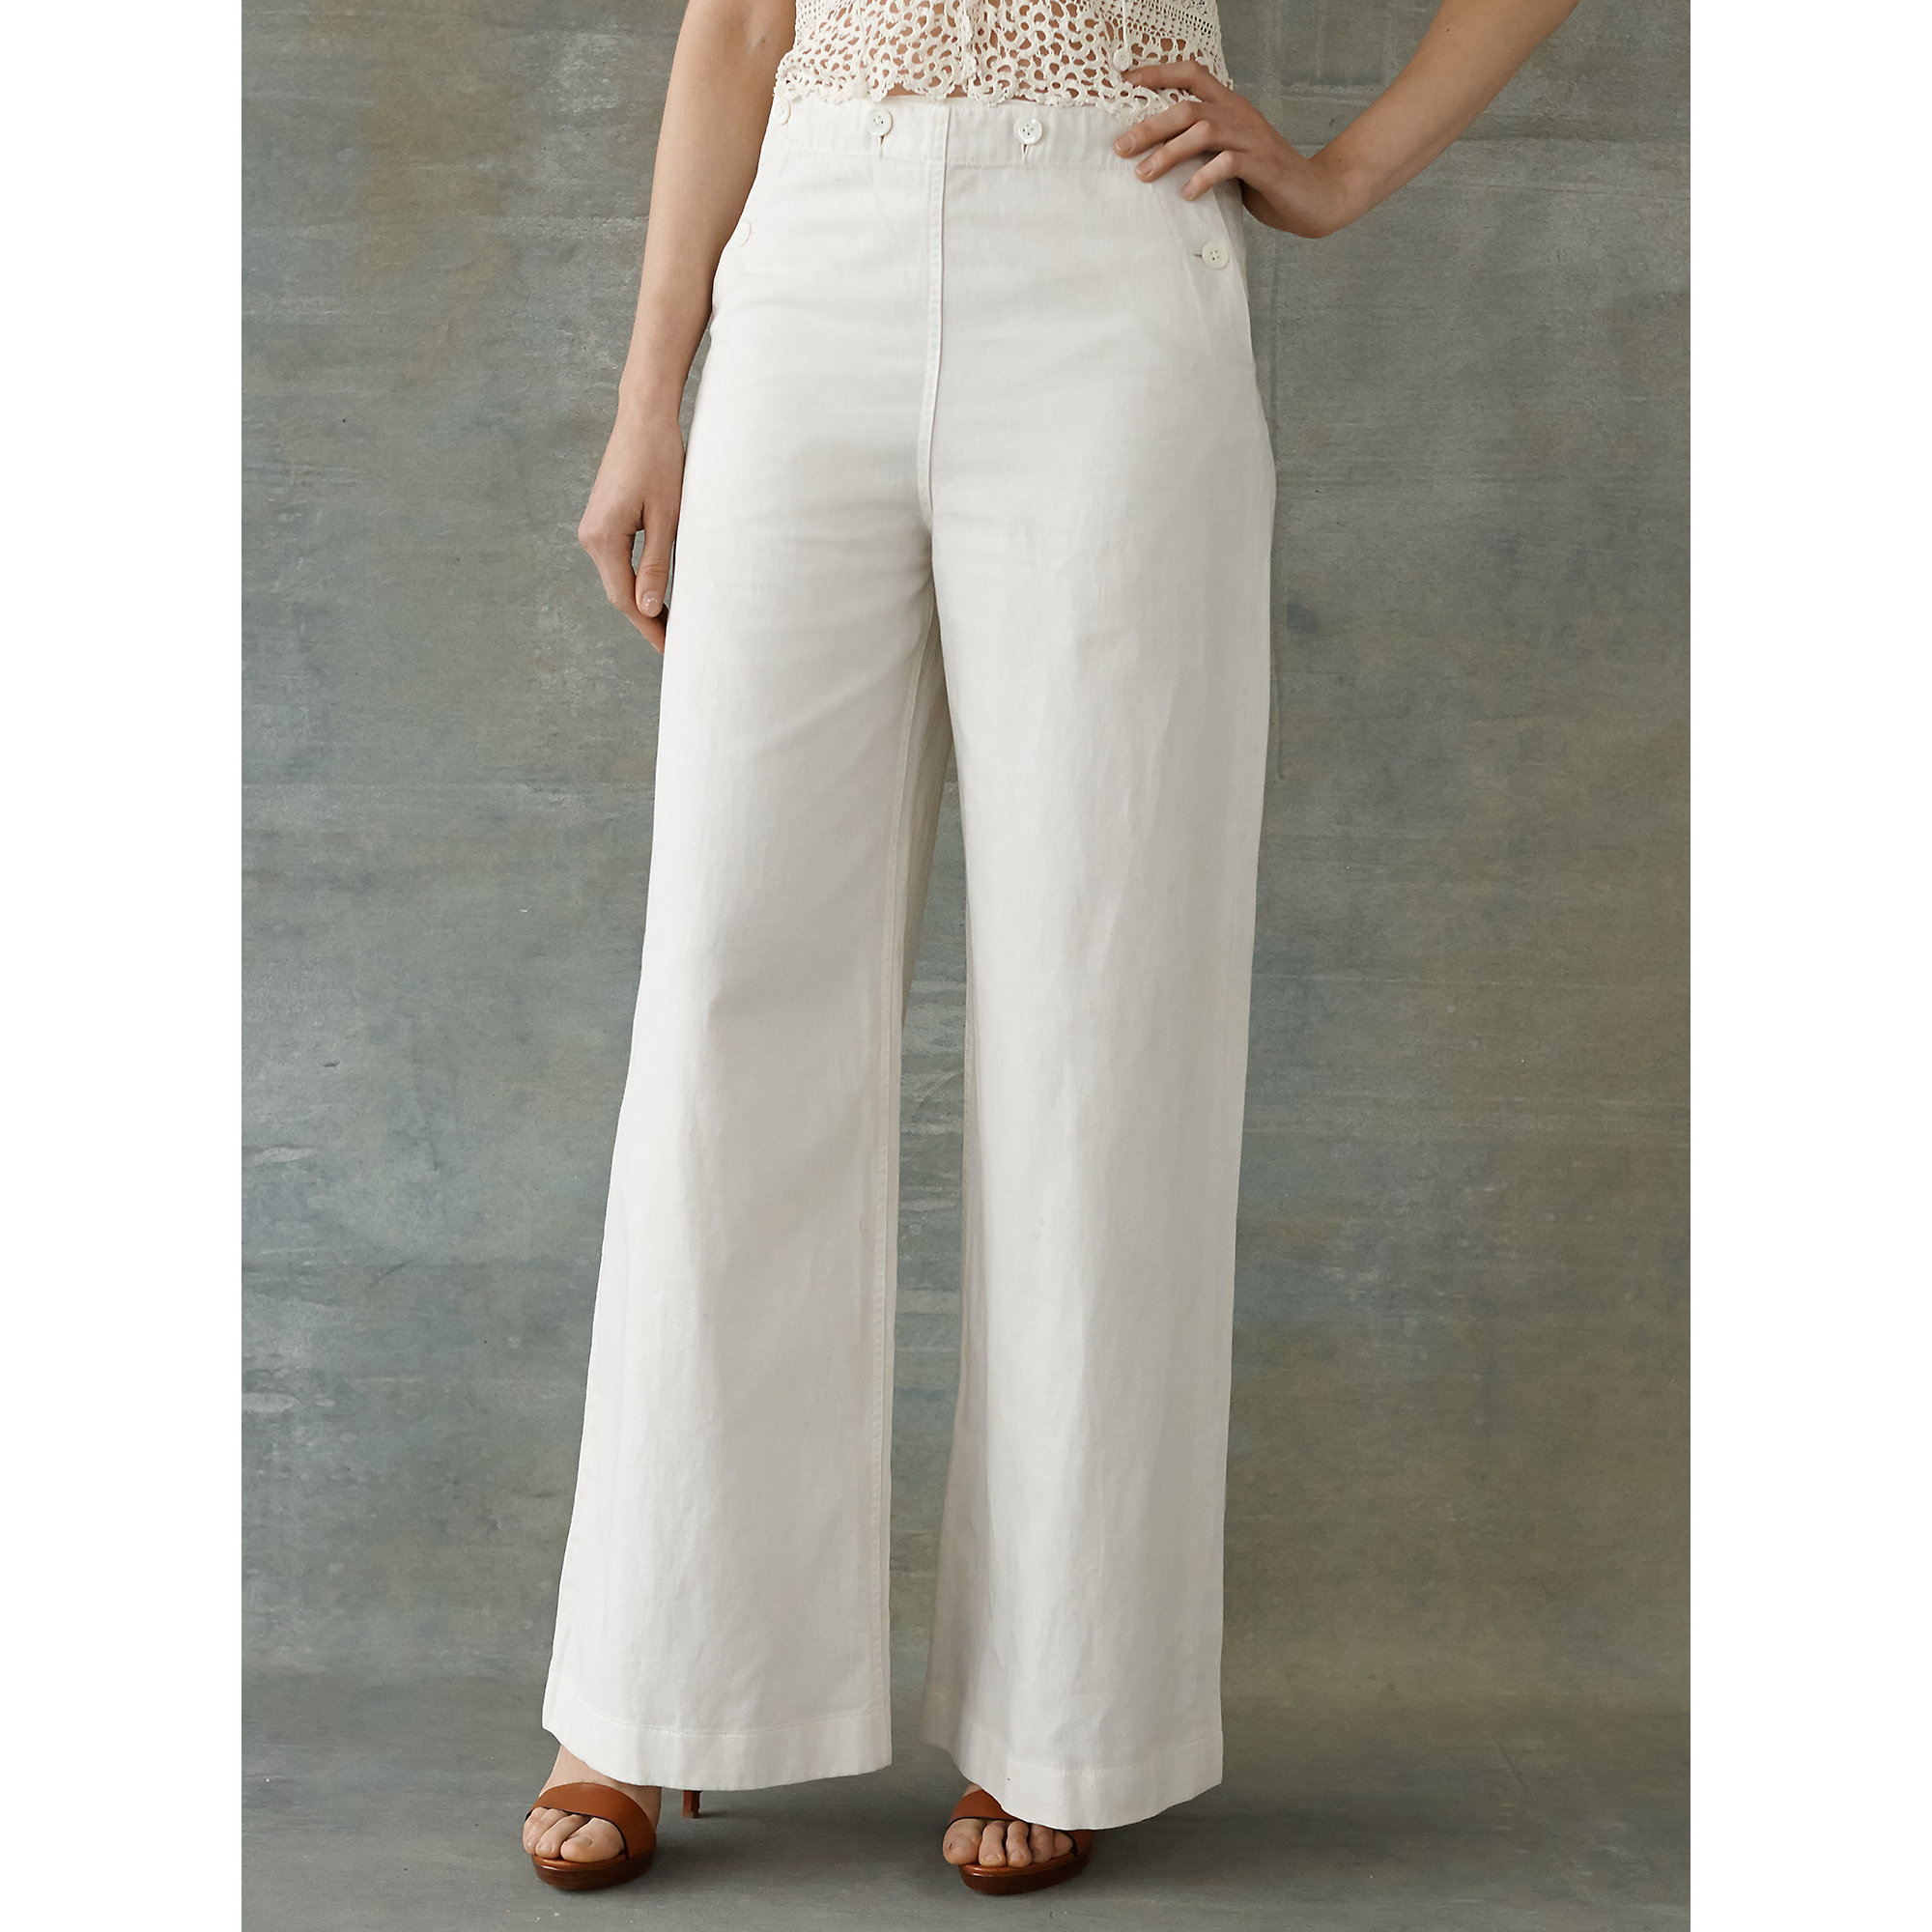 Rrl Wide-leg Sailor Pant in White | Lyst